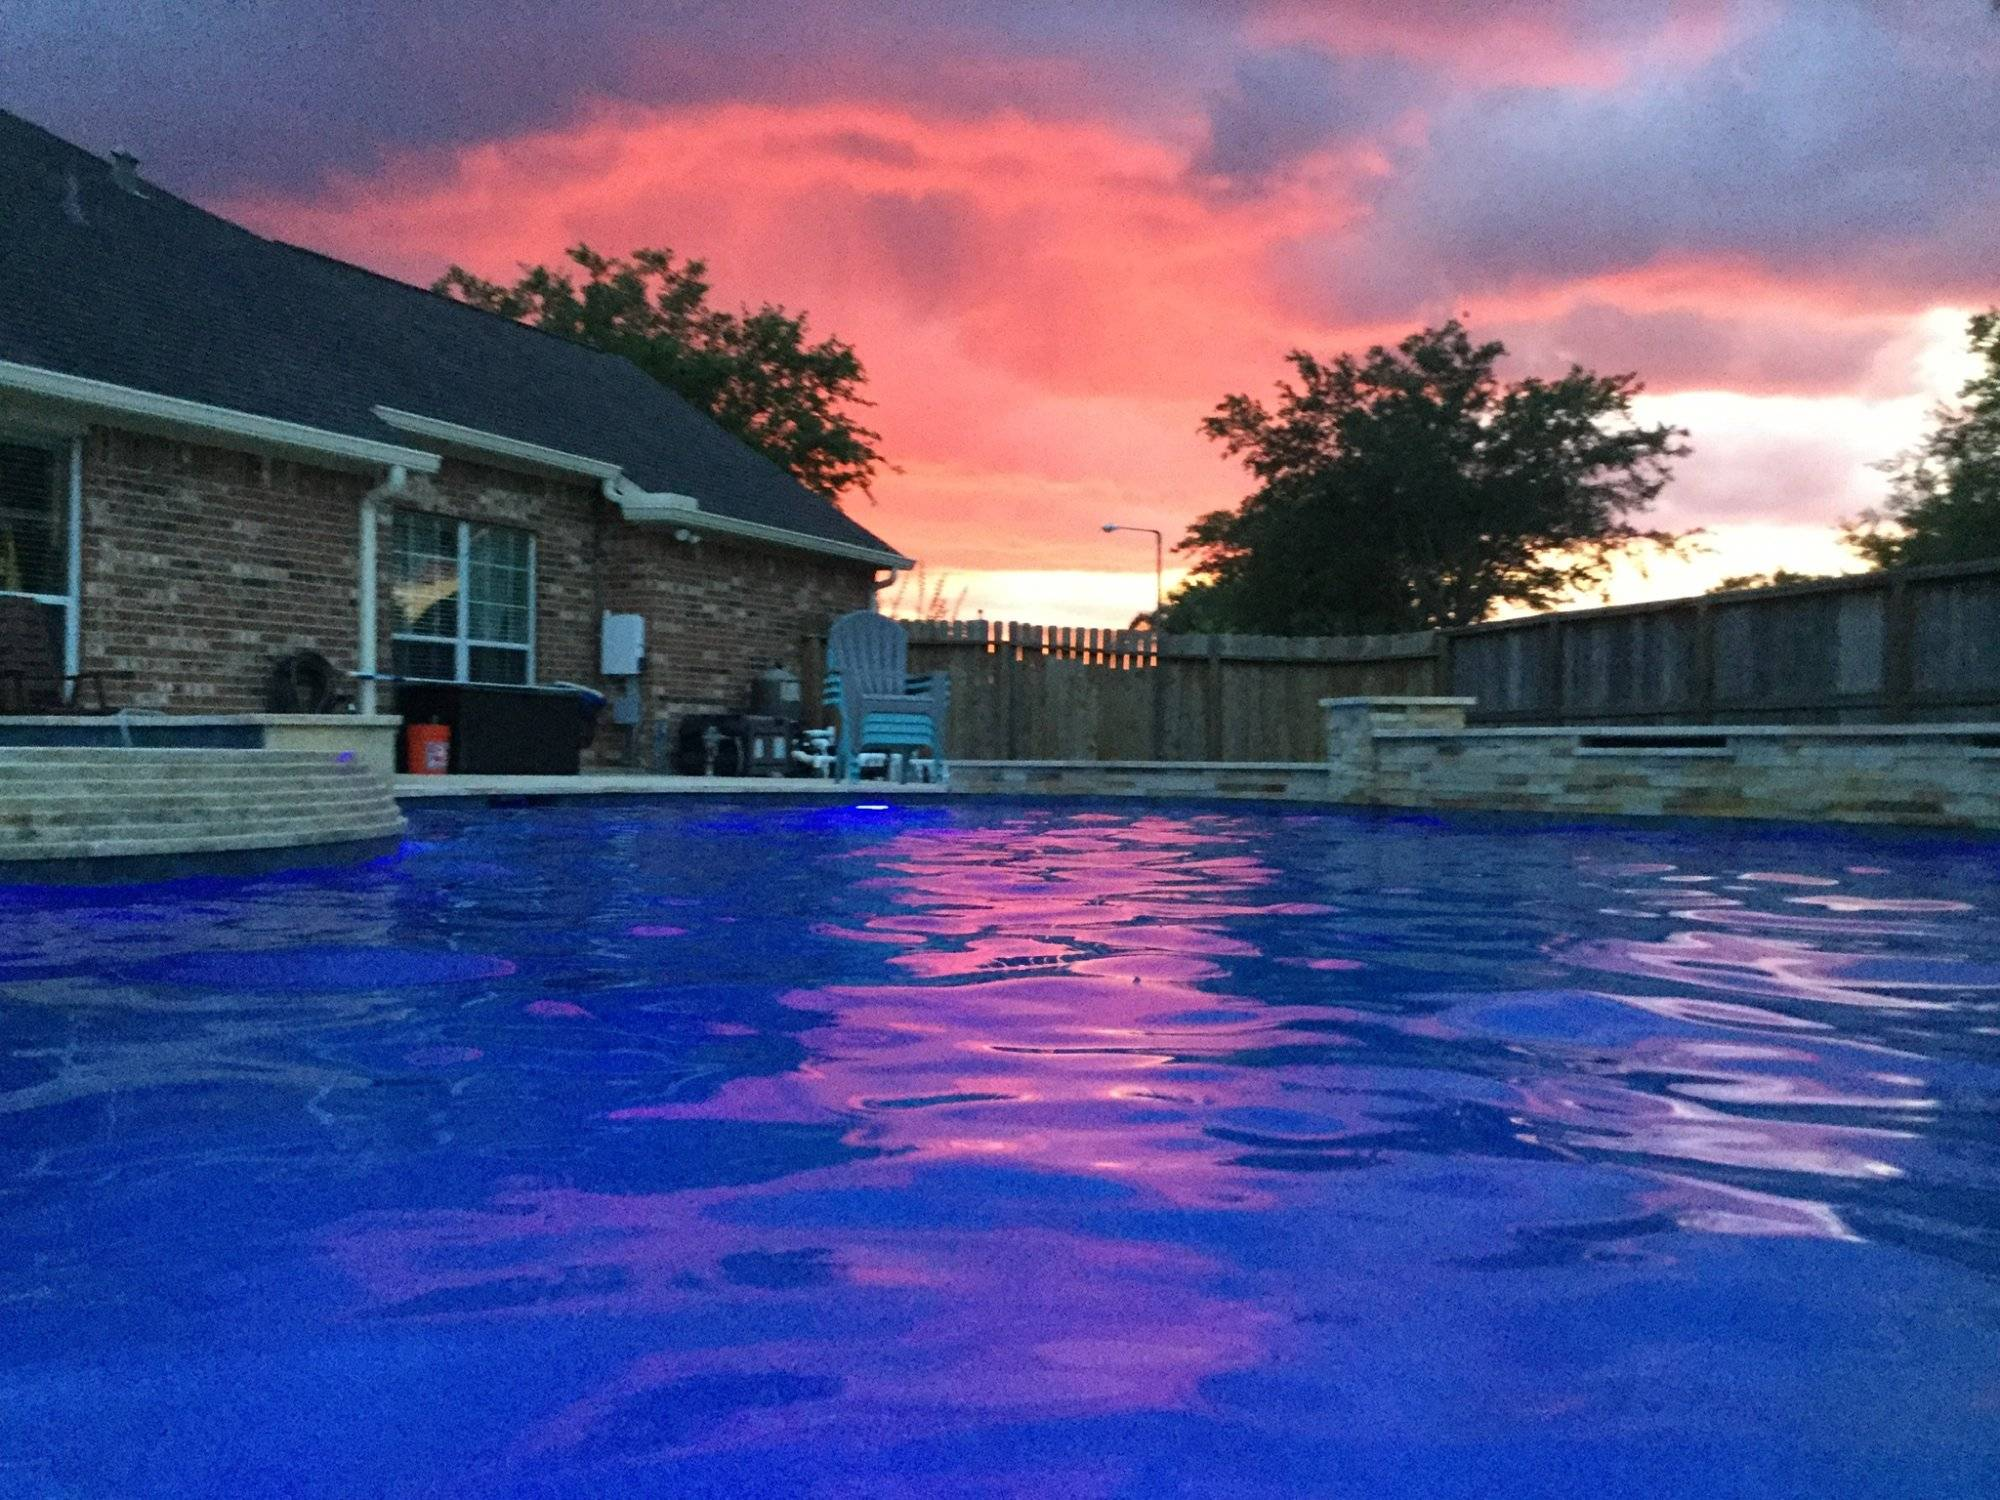 A red sunset over a clear blue swimming pool